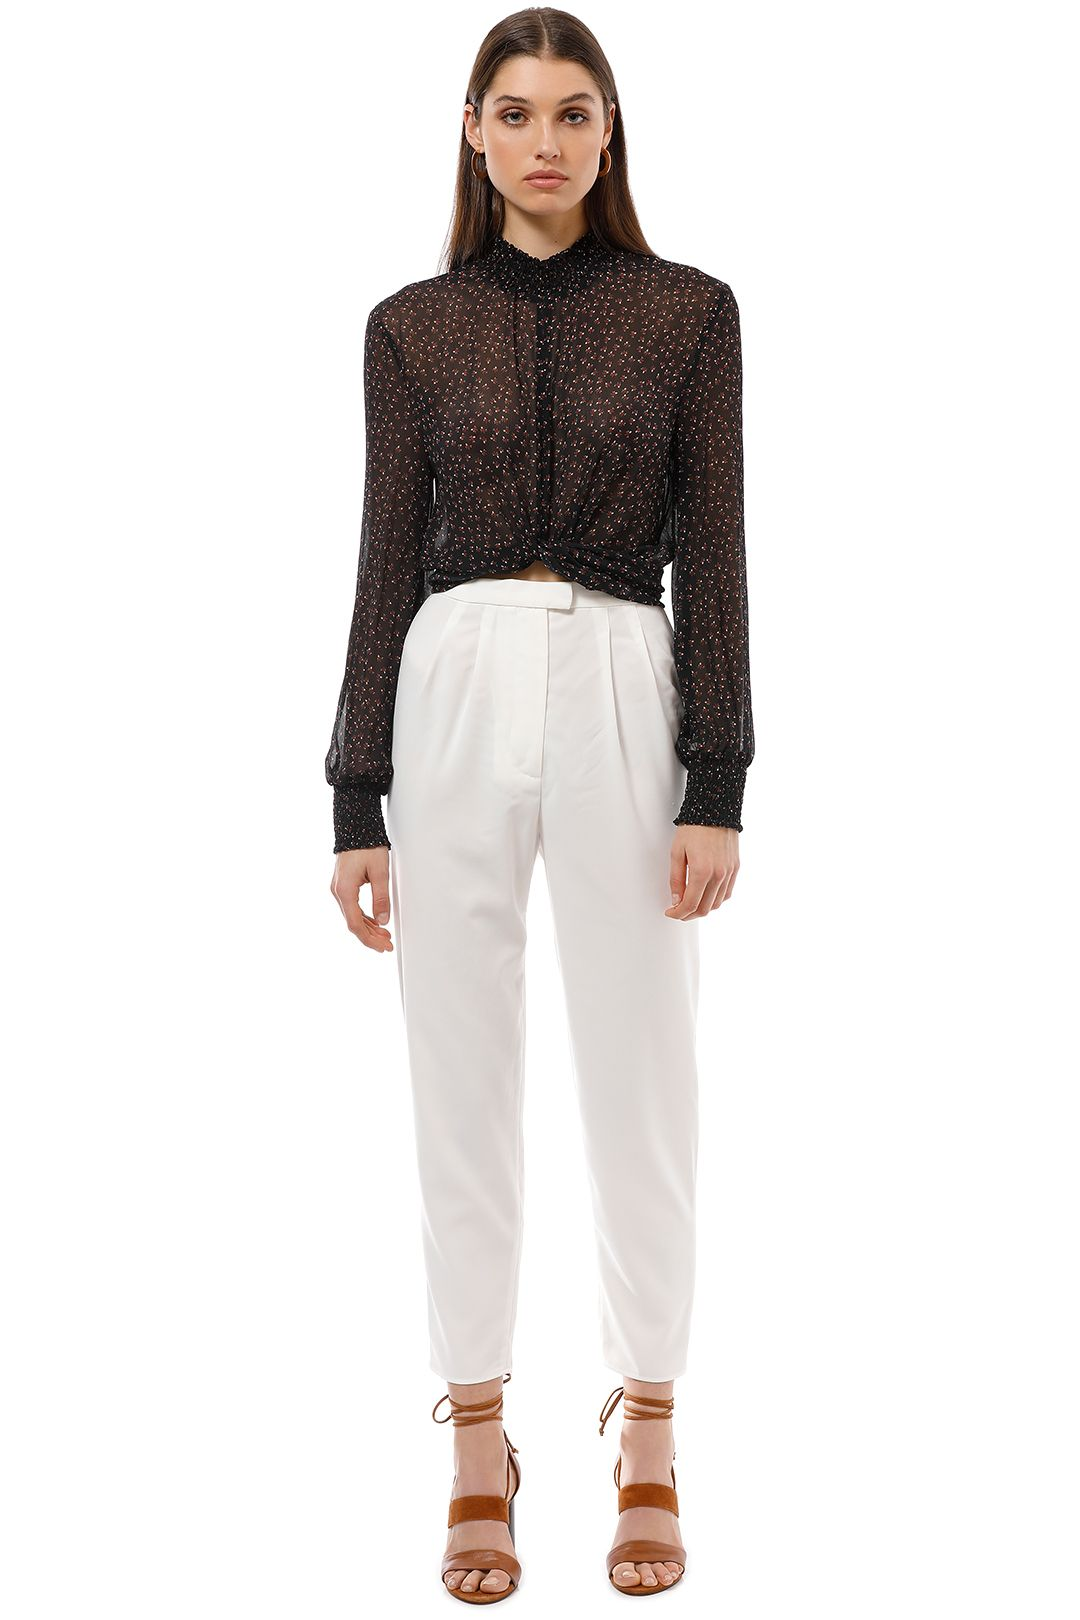 Keepsake the Label - Gone Again Pant - Ivory - Front